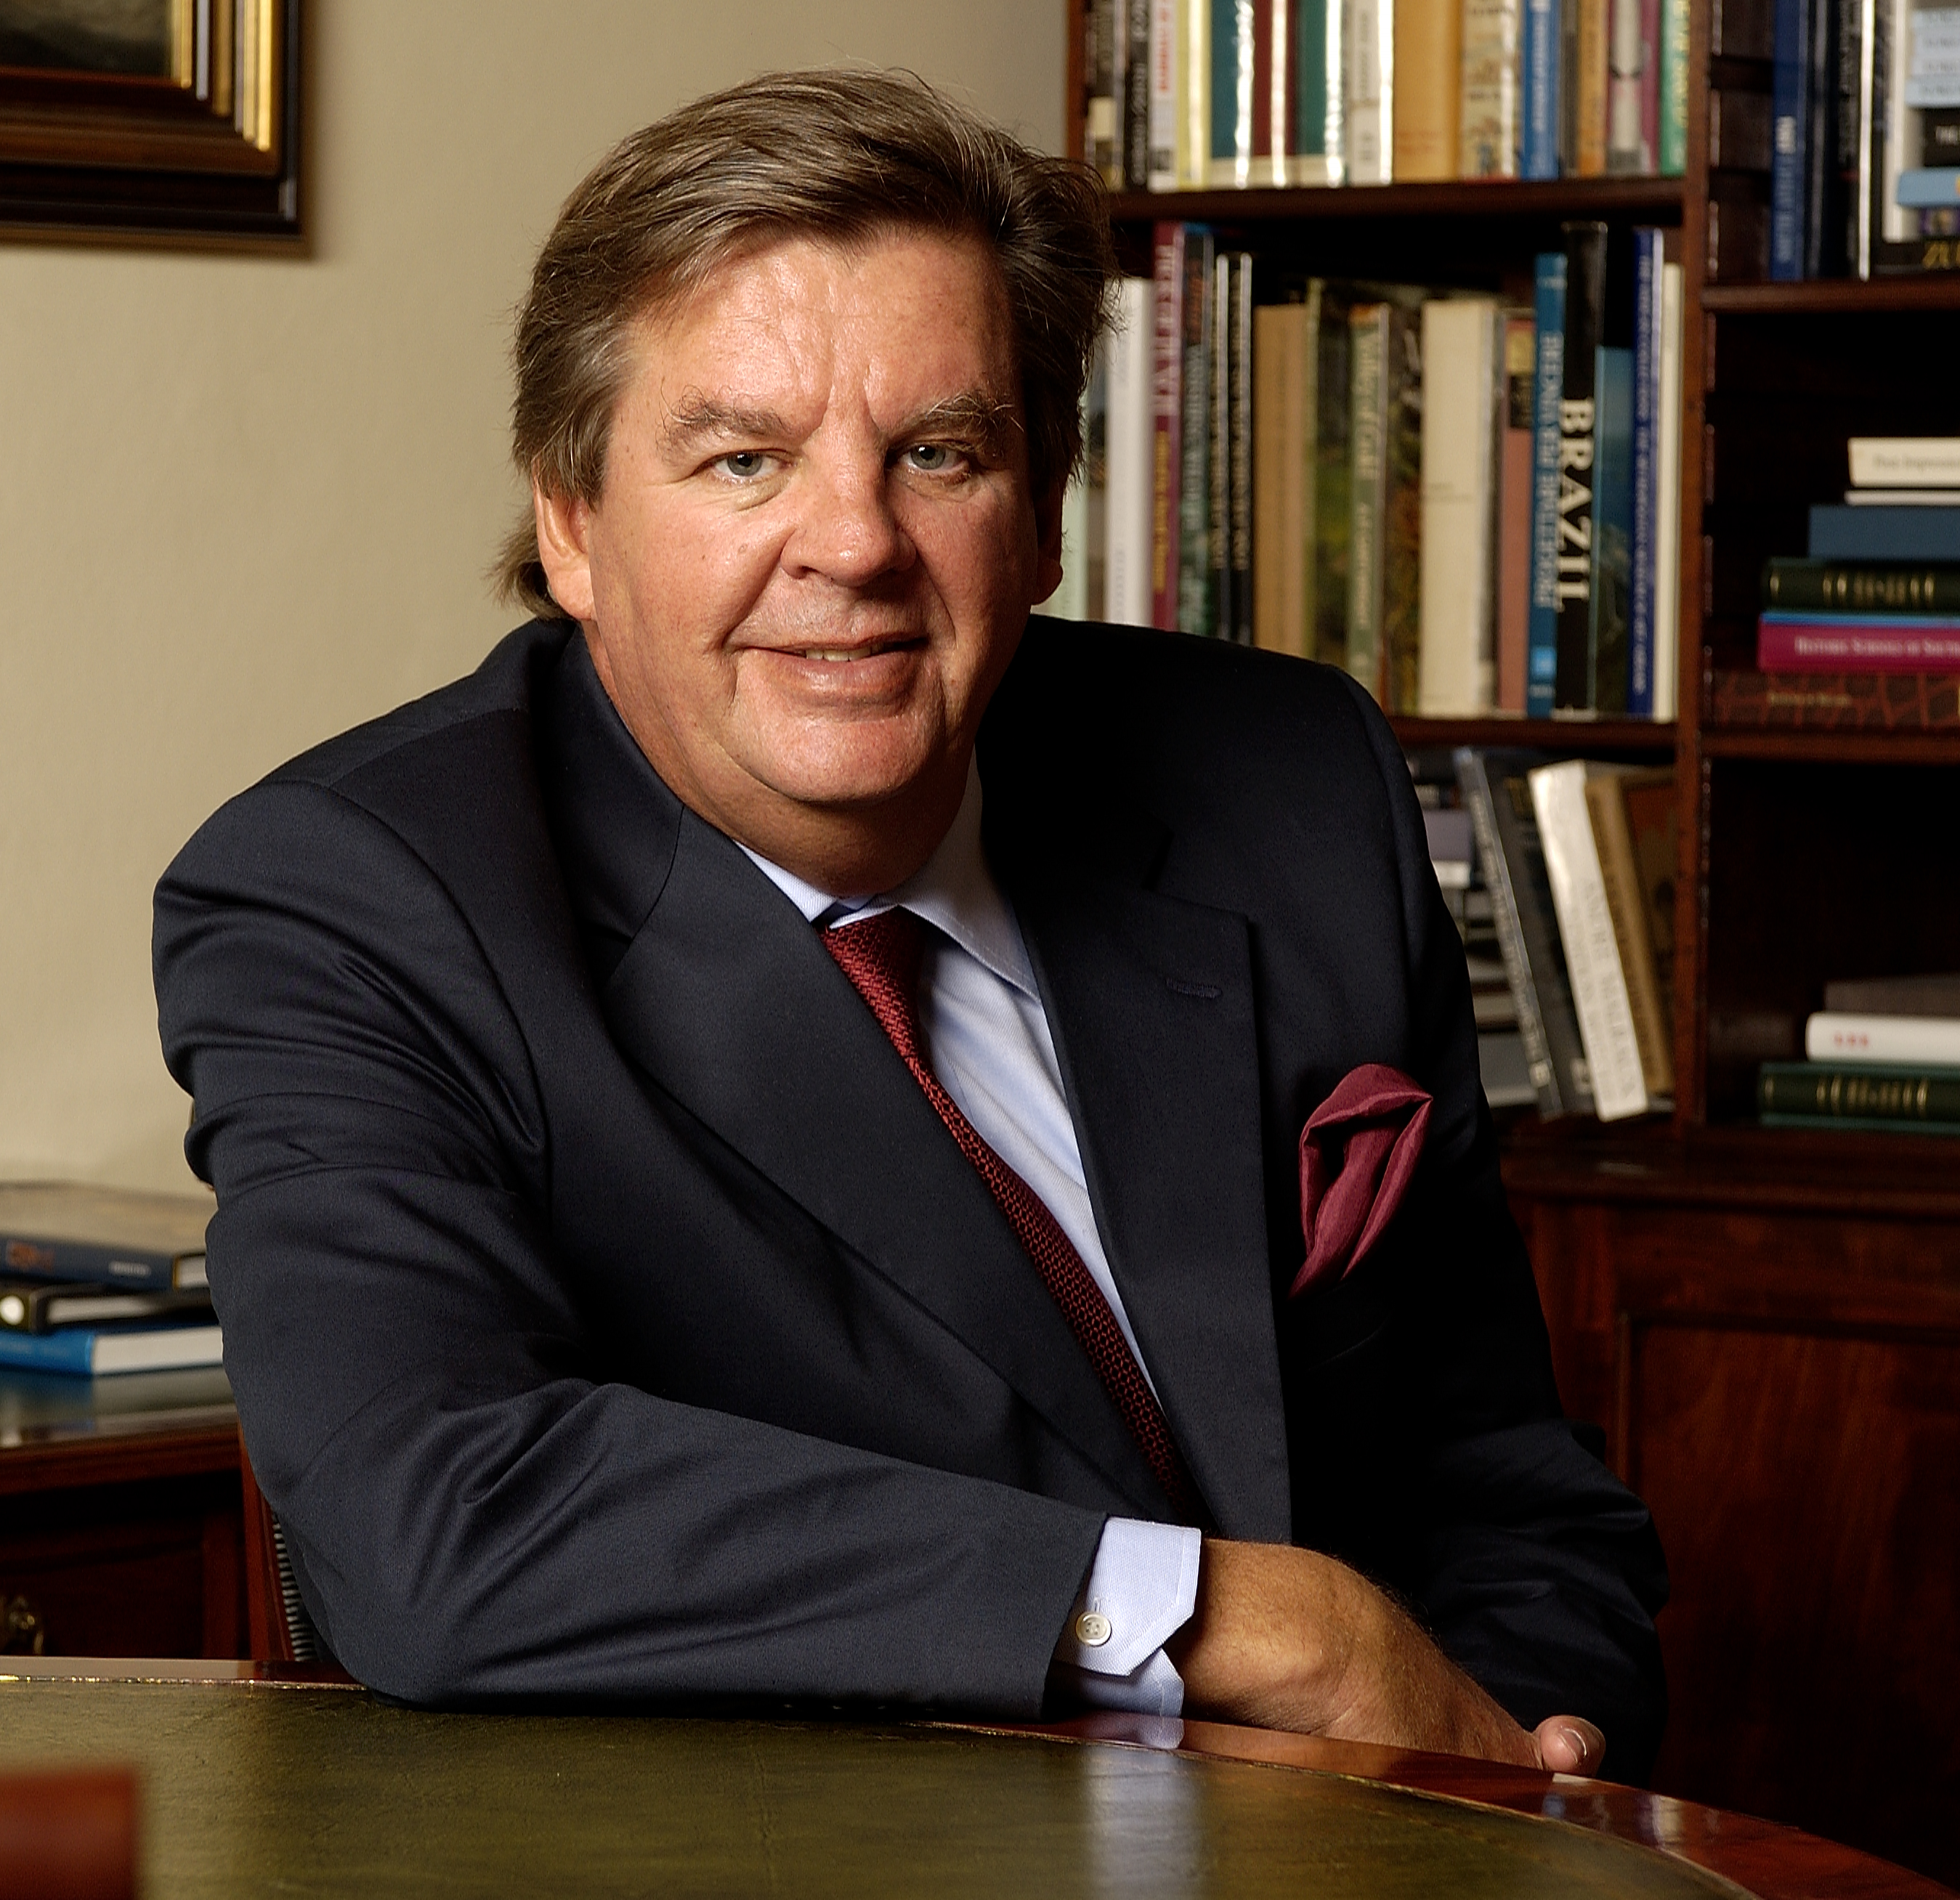 The 68-year old son of father Anton Rupert and mother Huberte Johann Rupert in 2018 photo. Johann Rupert earned a  million dollar salary - leaving the net worth at 7300 million in 2018